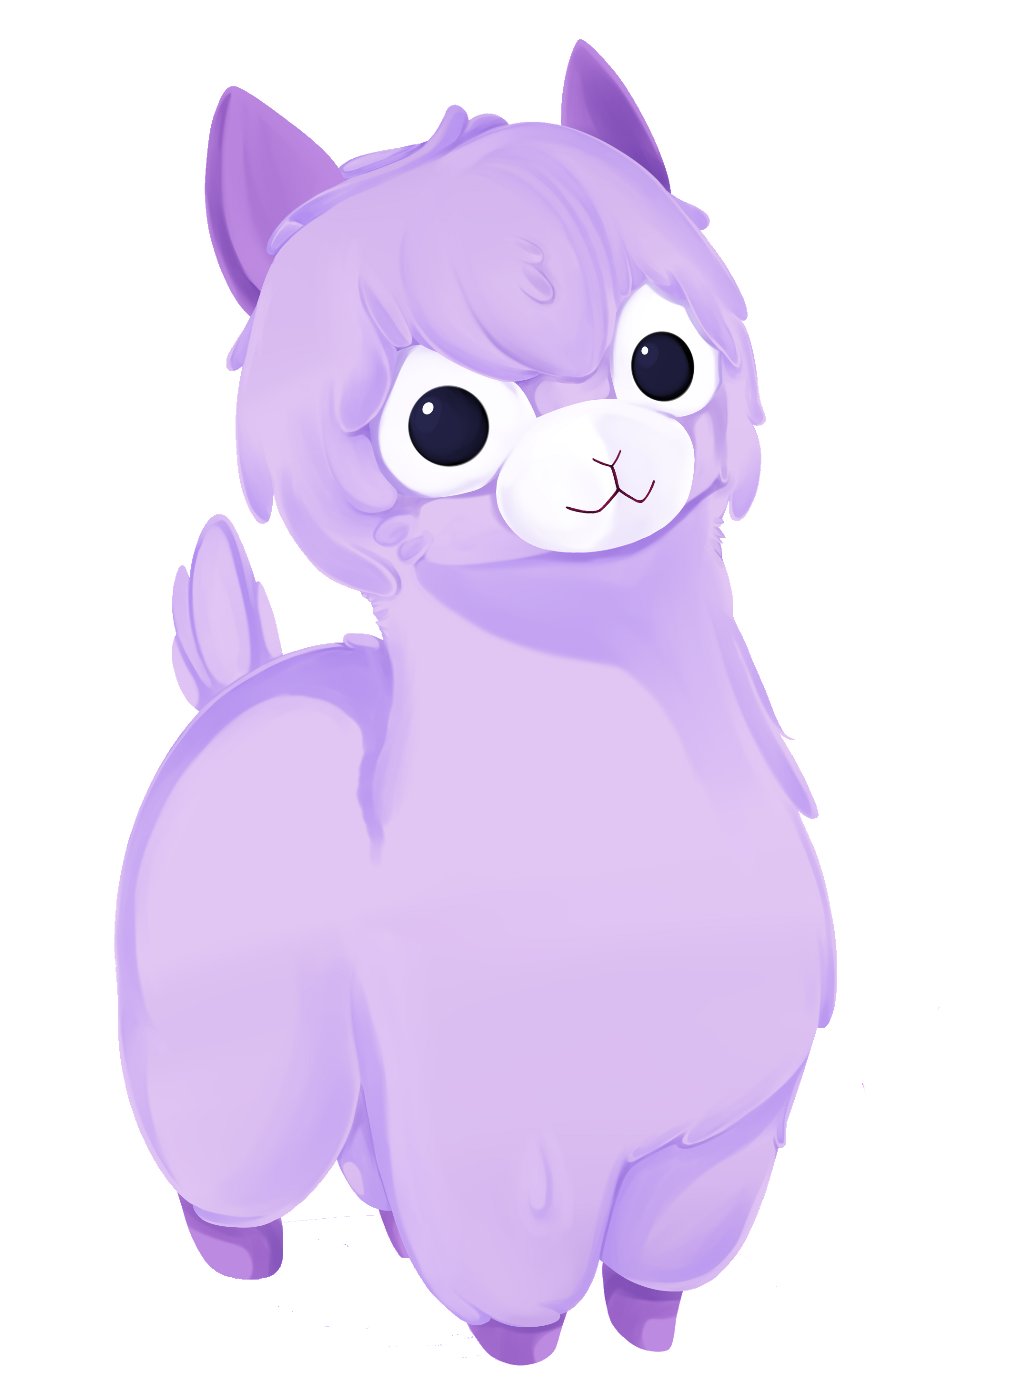 Purple cat clipart cute vector royalty free download llama alpaca purple cute kawaii adorbs love kandy fanta... vector royalty free download